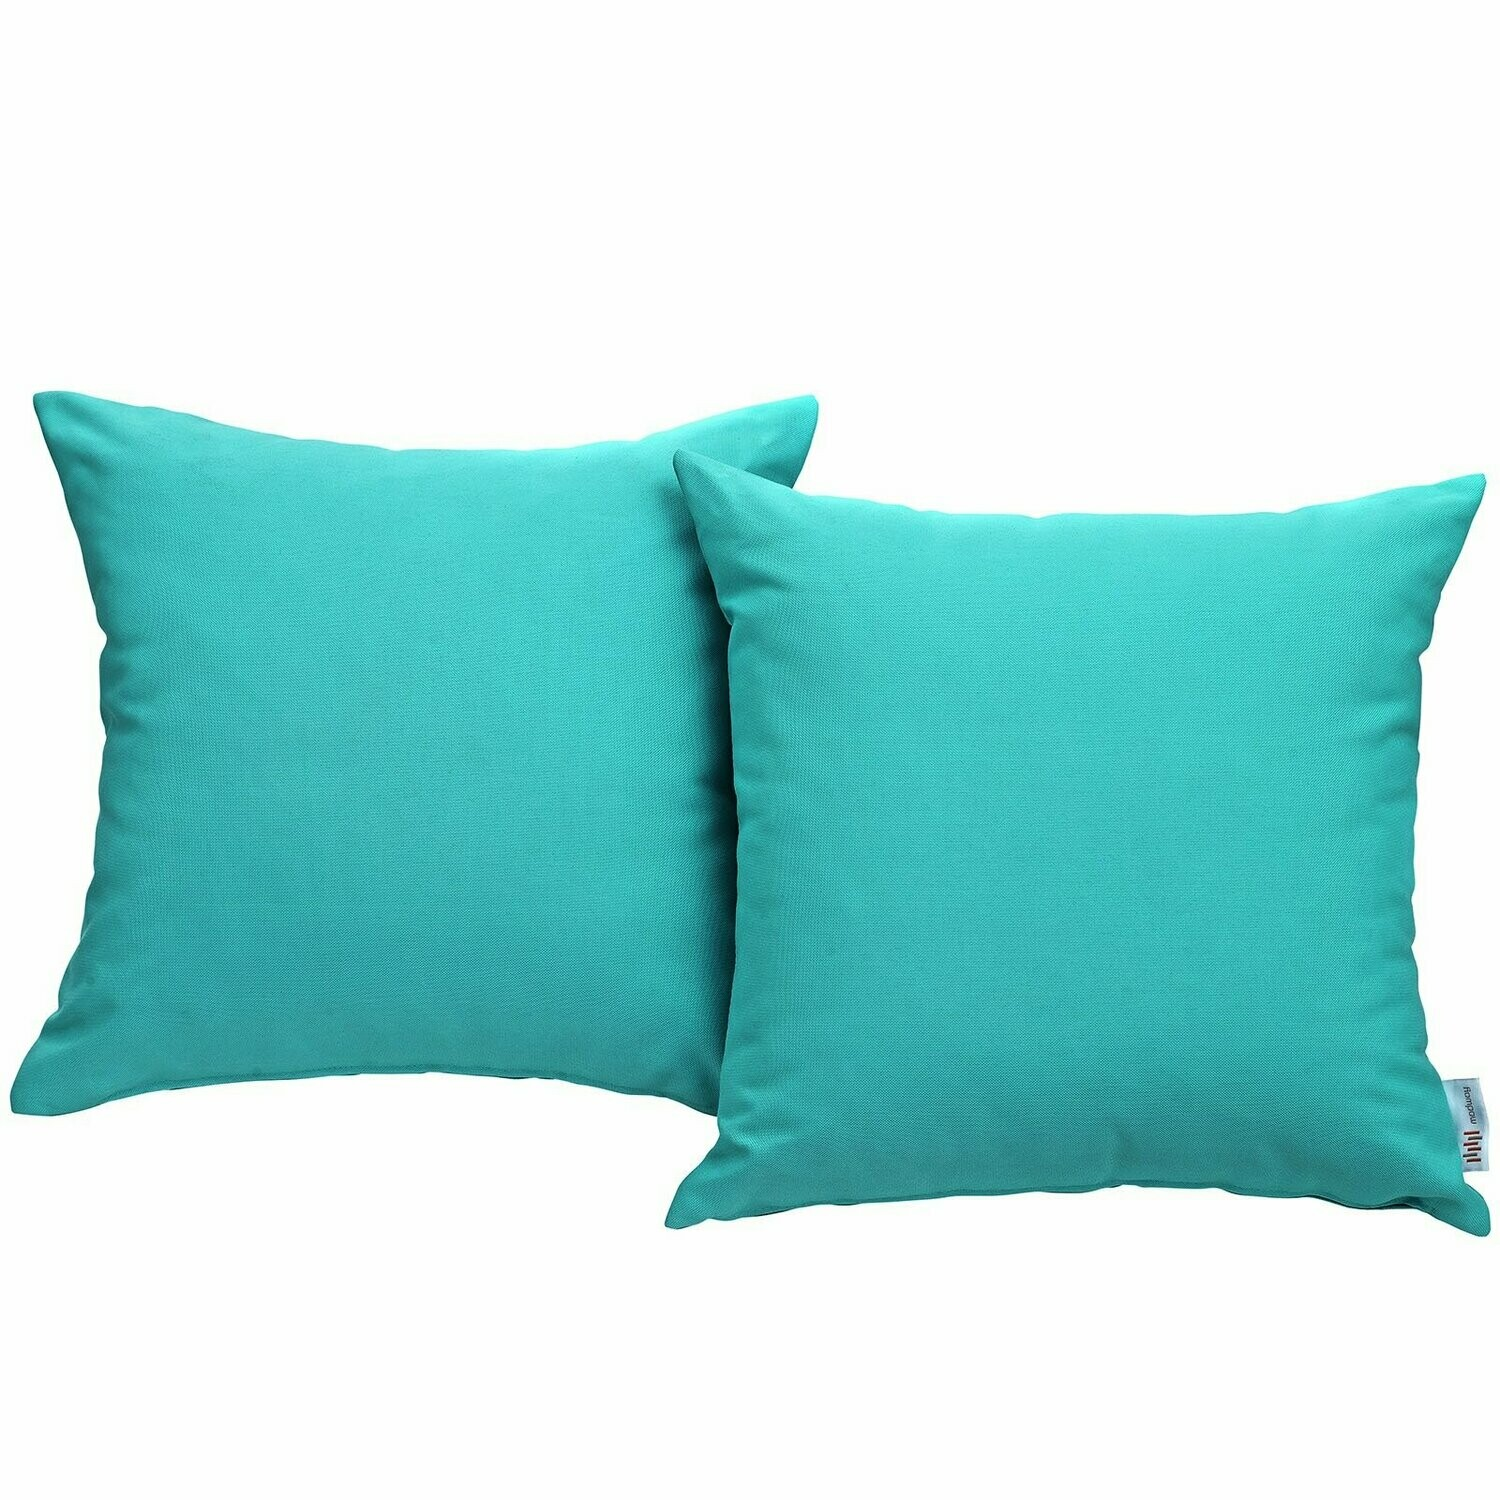 """Hinsdale Patio 2 Piece Pillow Set  17"""" x 17"""" in Turquoise"""